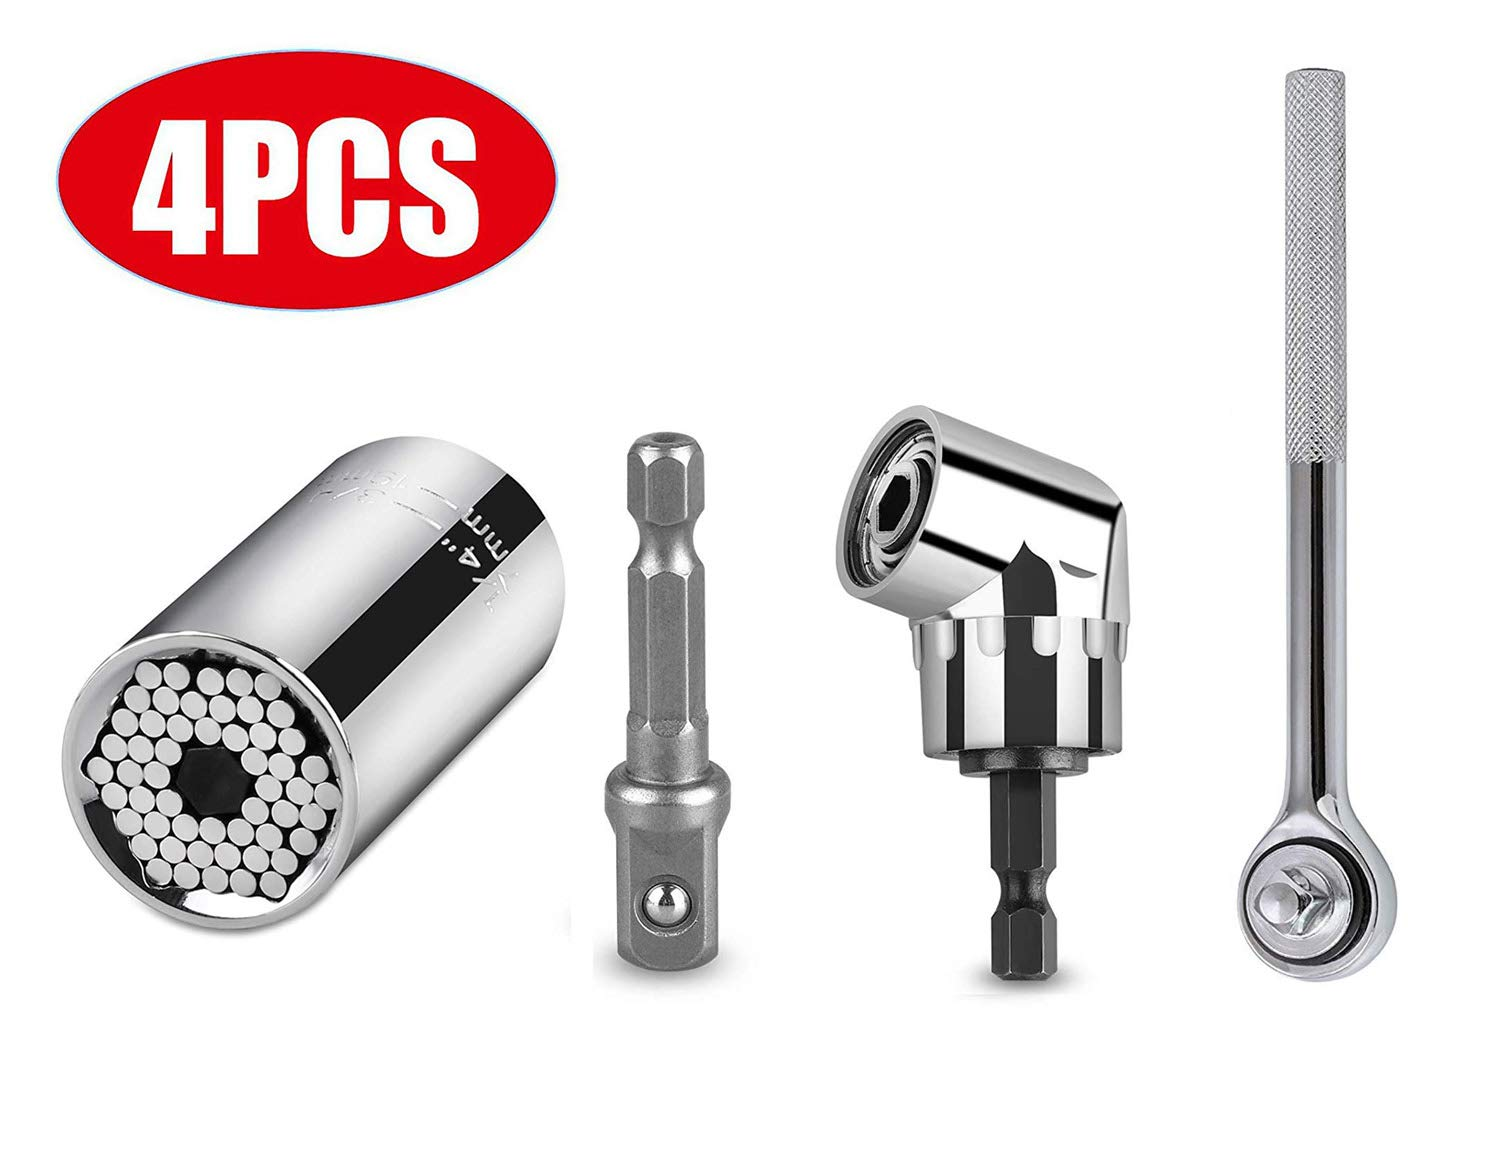 christmas gifts,dad gifts socket wrench set Tools,Gifts for dad tools for men Universal Socket 3pcs Tool set 7-19mm